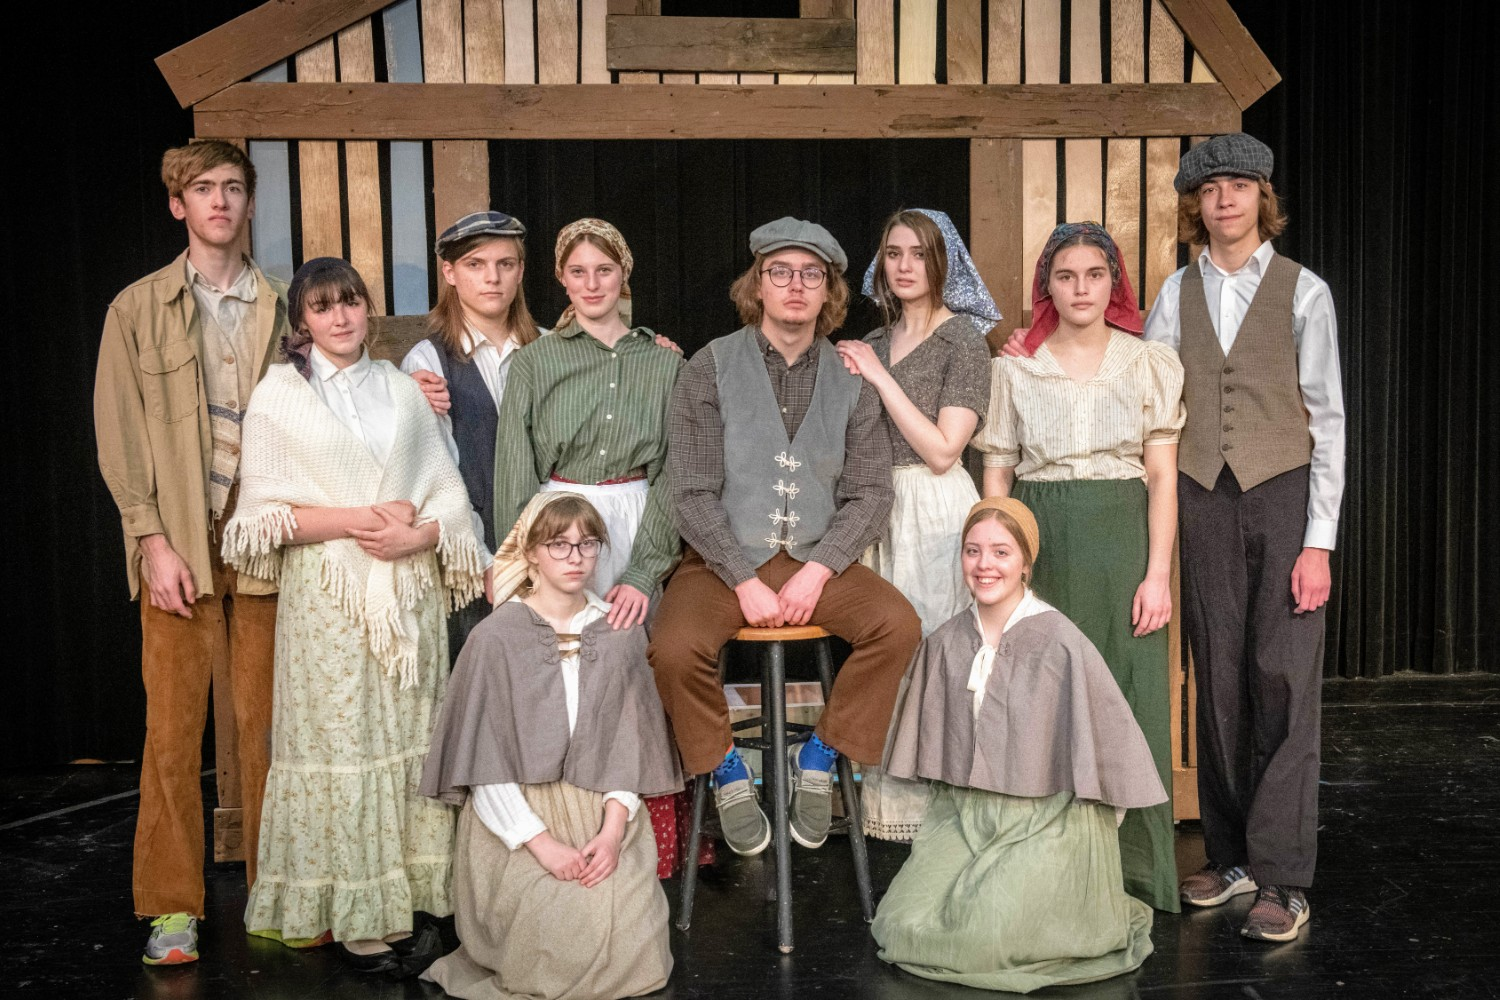 MPHS presents Fiddler on the Roof